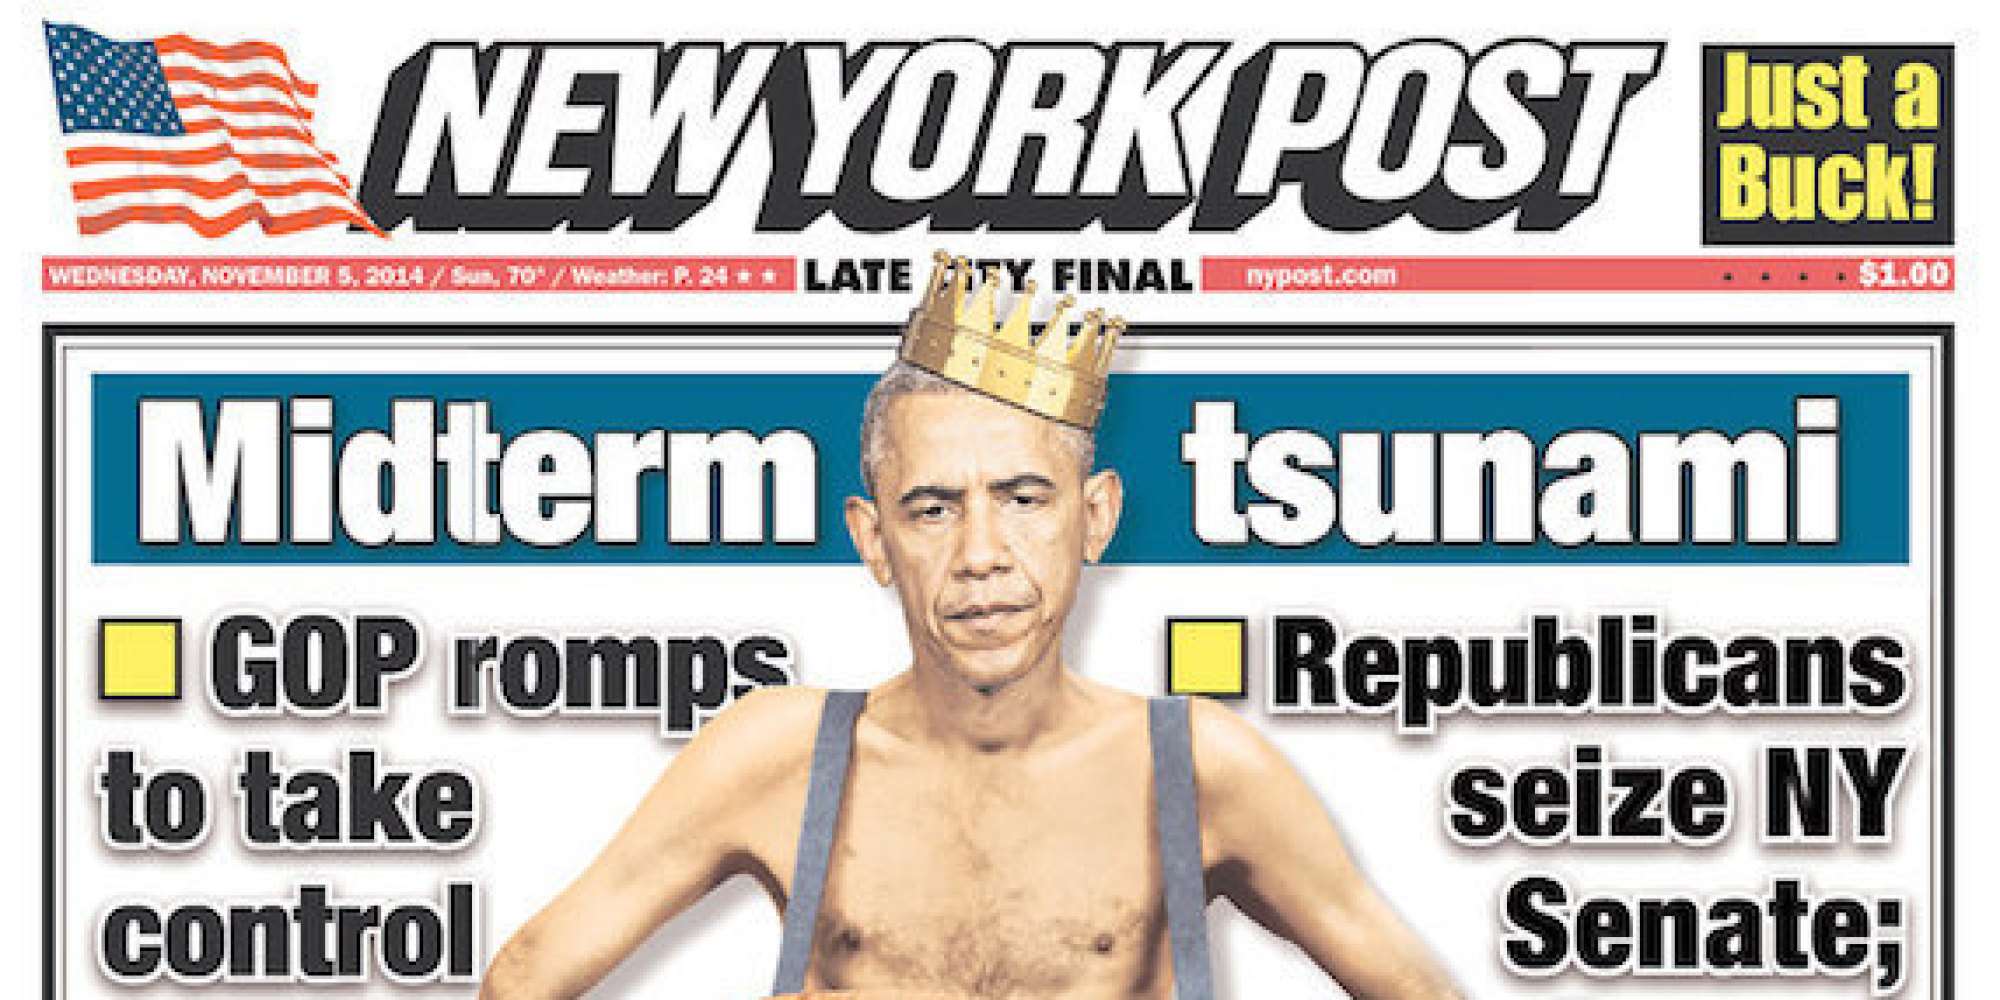 New York Post Front Page Shows A Naked Obama, Stripped